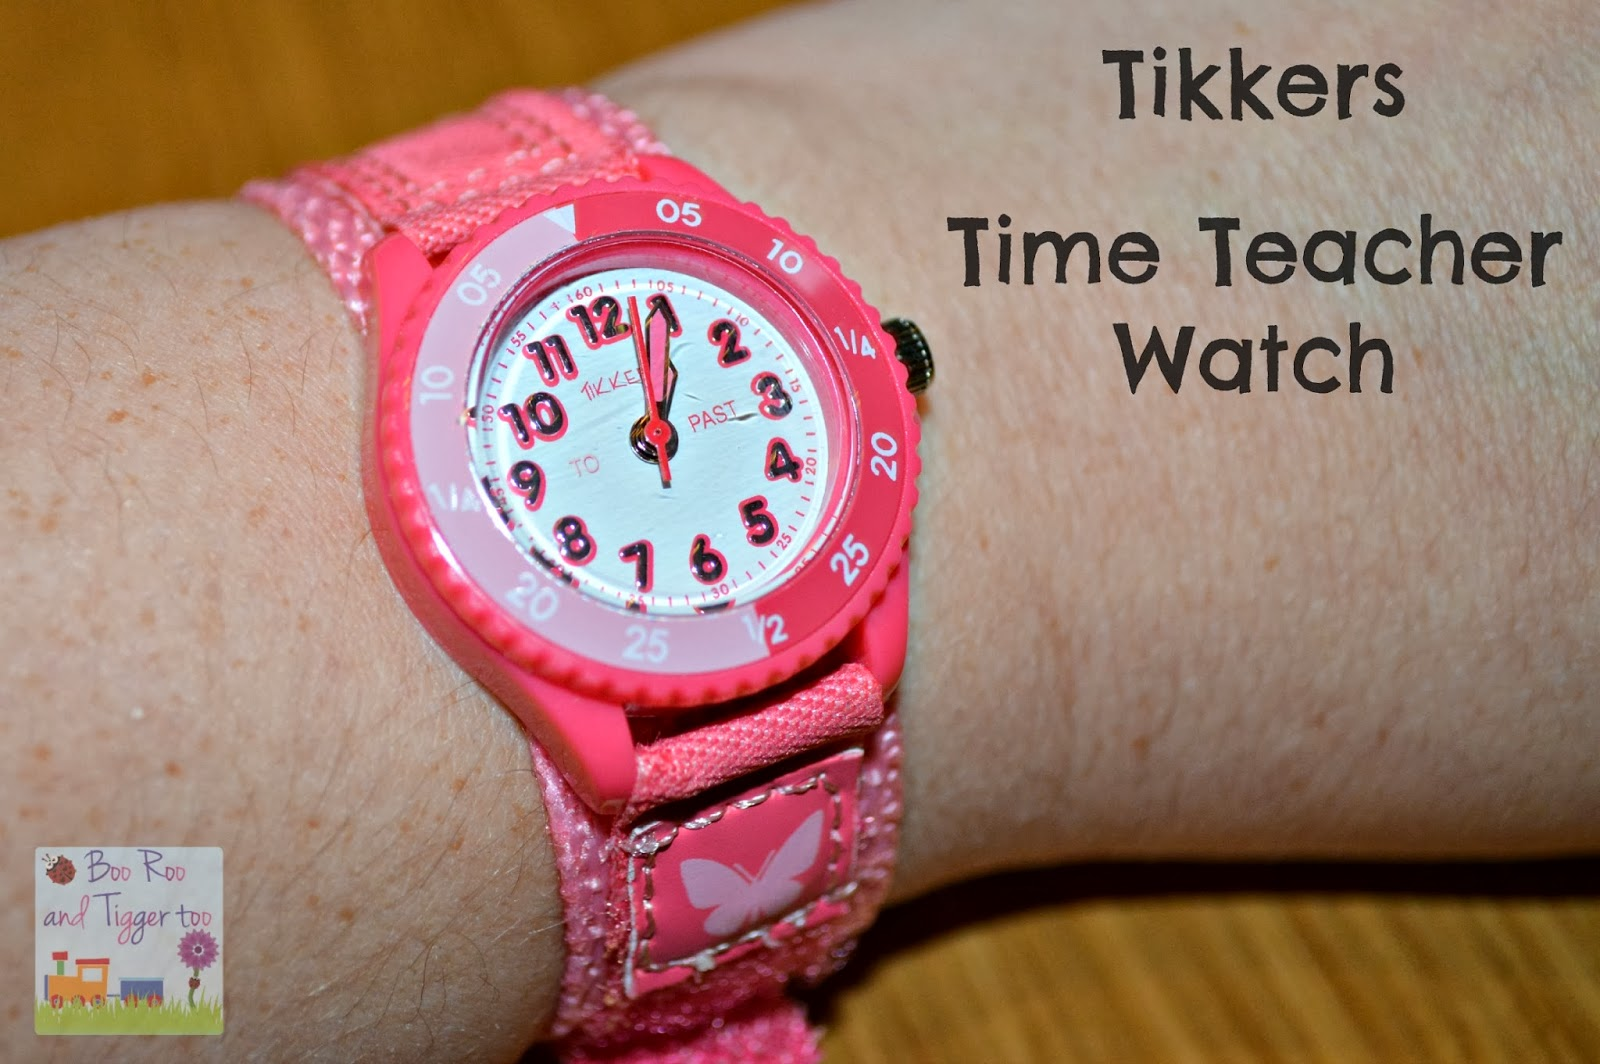 Tikkers Butterfly Time Teacher watch with Velcro strap